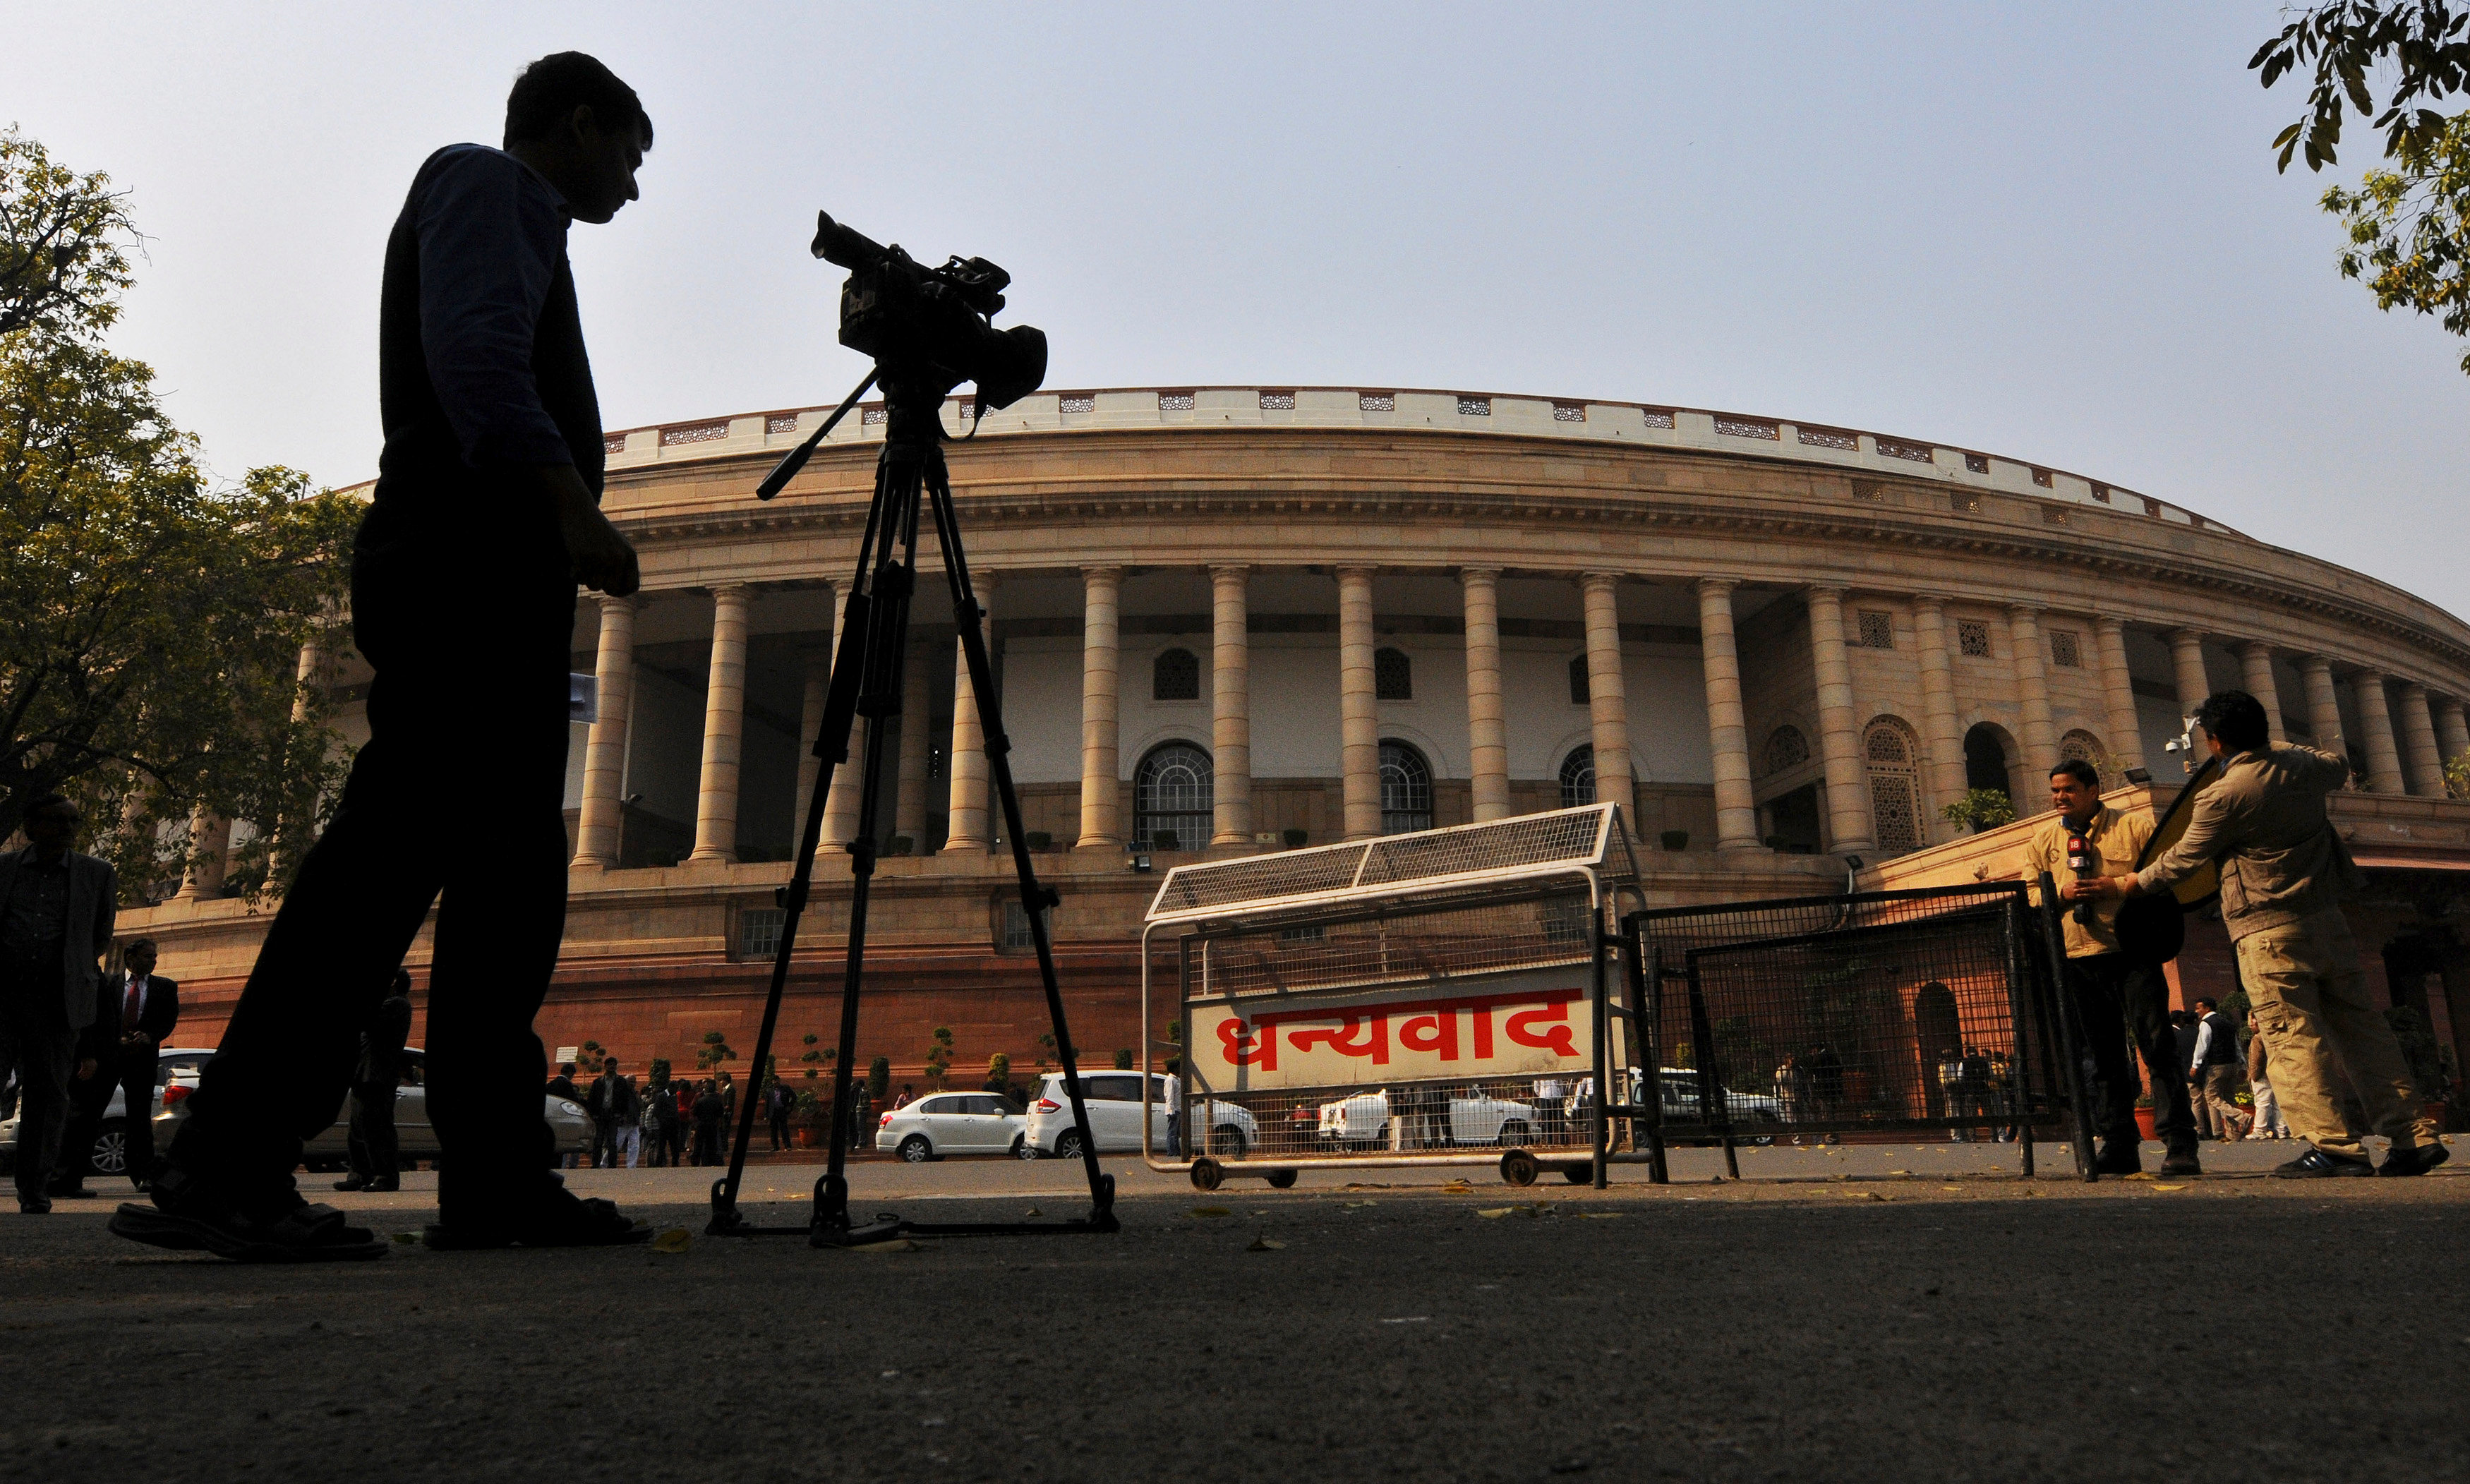 Television journalists report from the premises of India's Parliament in New Delhi, India, February 13, 2014.